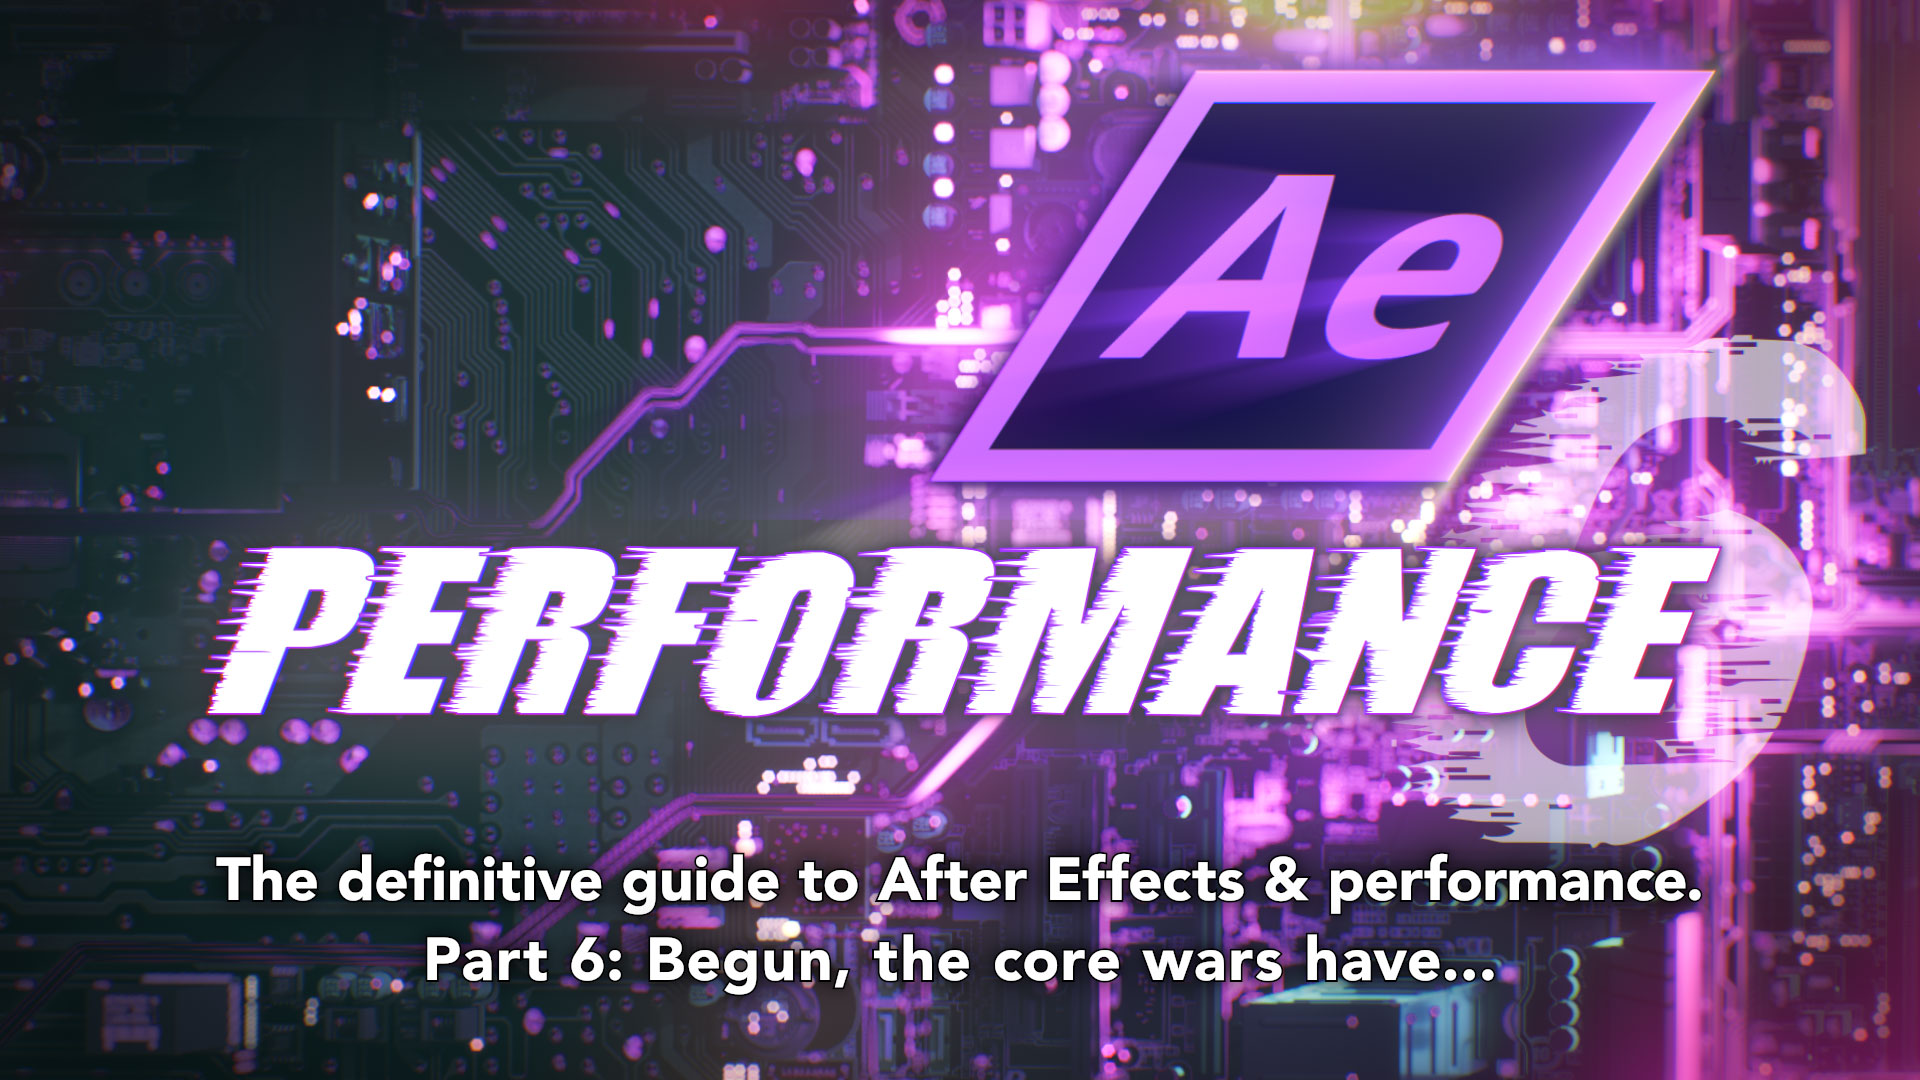 After Effects & Performance. Part 6: Begun, the core wars have... 4